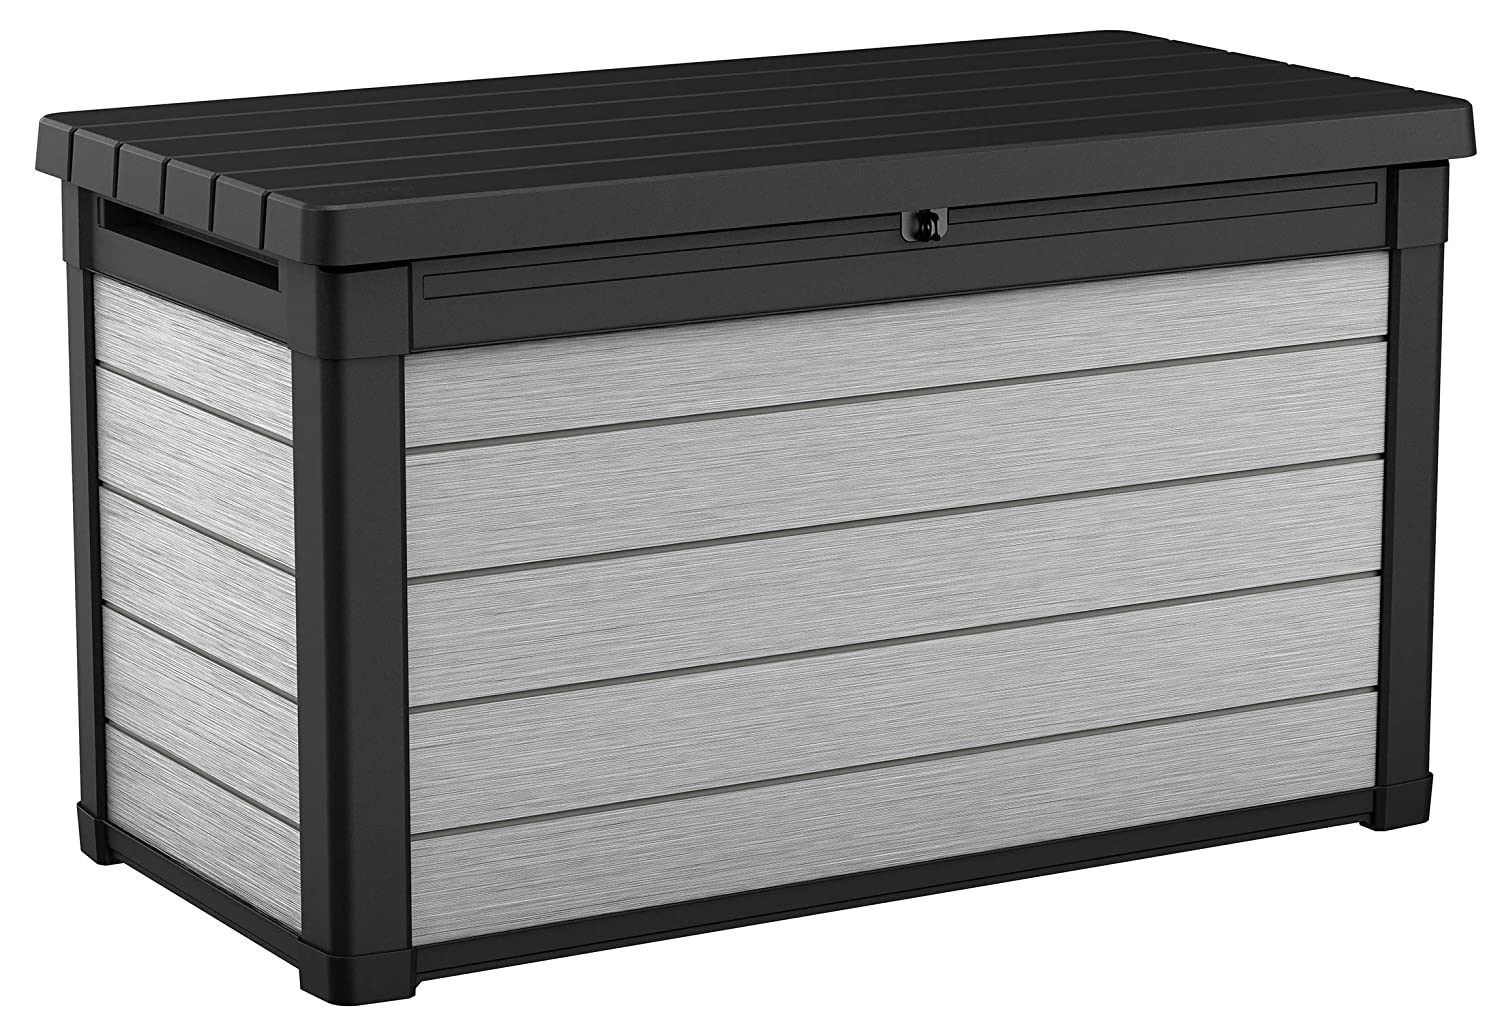 Keter 240302 Denali 100 Gal All Weather Outdoor Storage Deck Box, Grey/Black